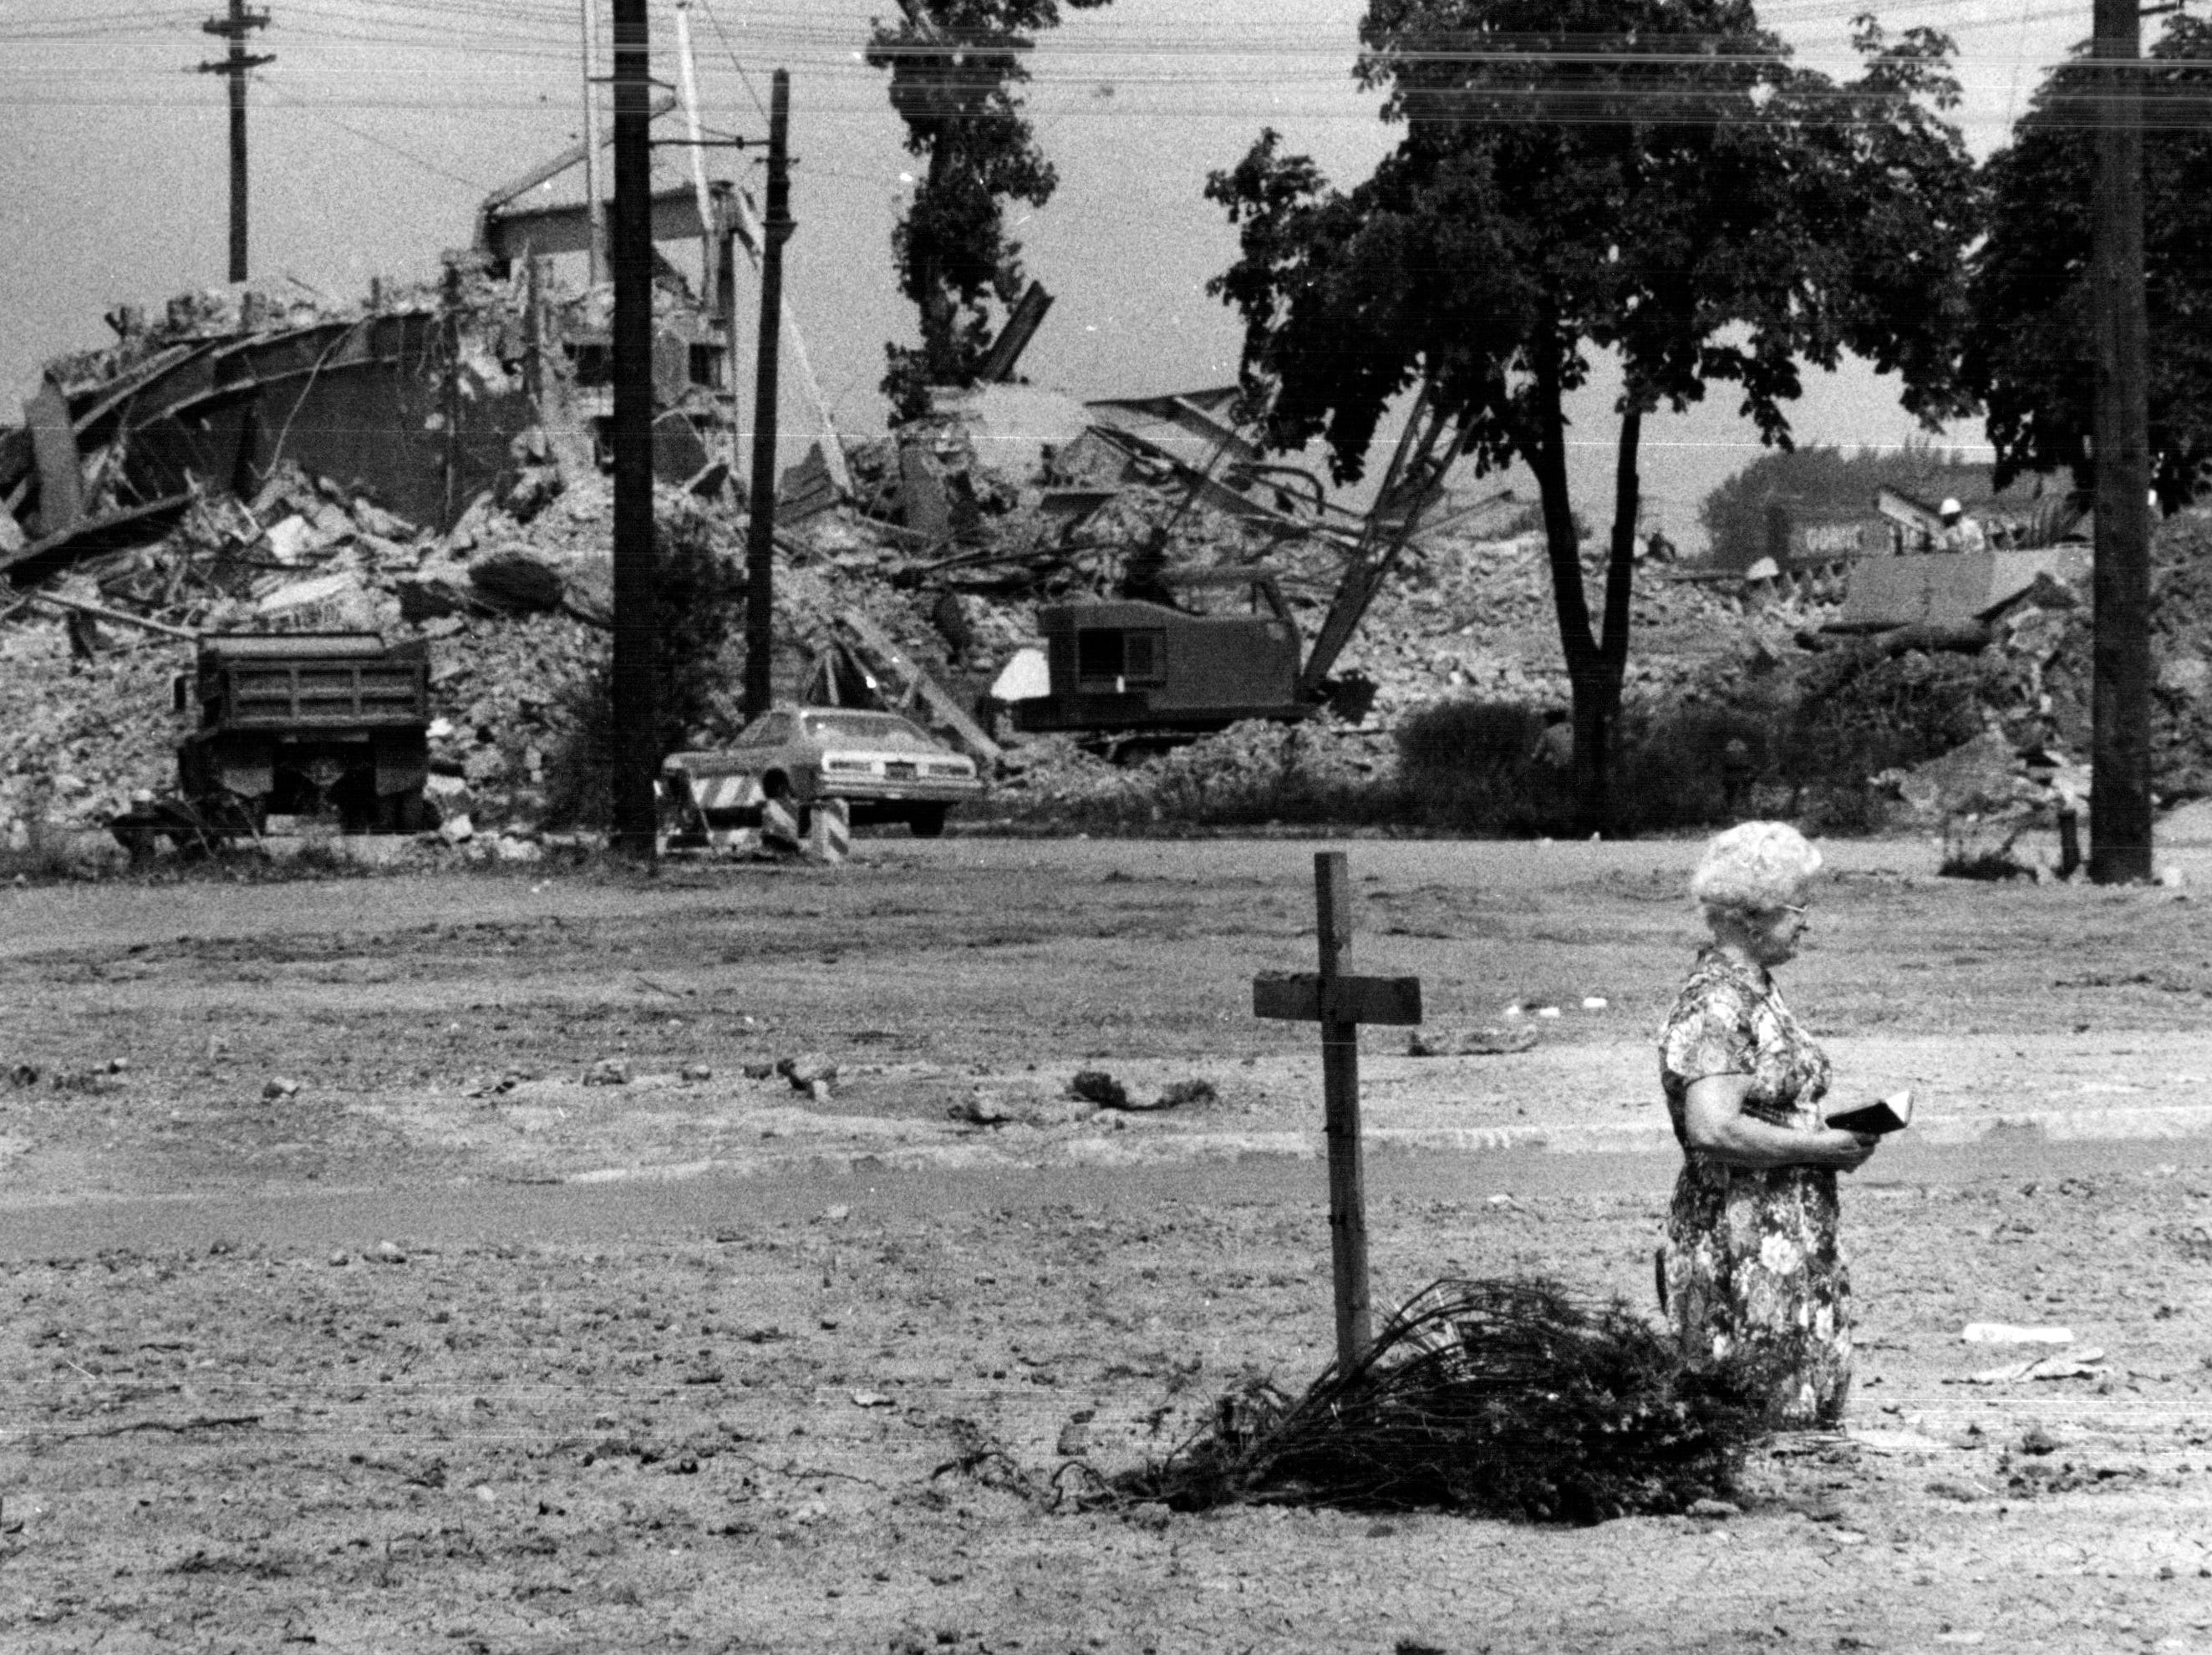 Josephine Jakubowski prays at the leveled site of her church, the Immaculate Conception Church, in Detroit, Michigan's Poletown neighborhood. She and many others had protested the demolition but General Motors and the city of Detroit leveled a neighborhood to build a factory.